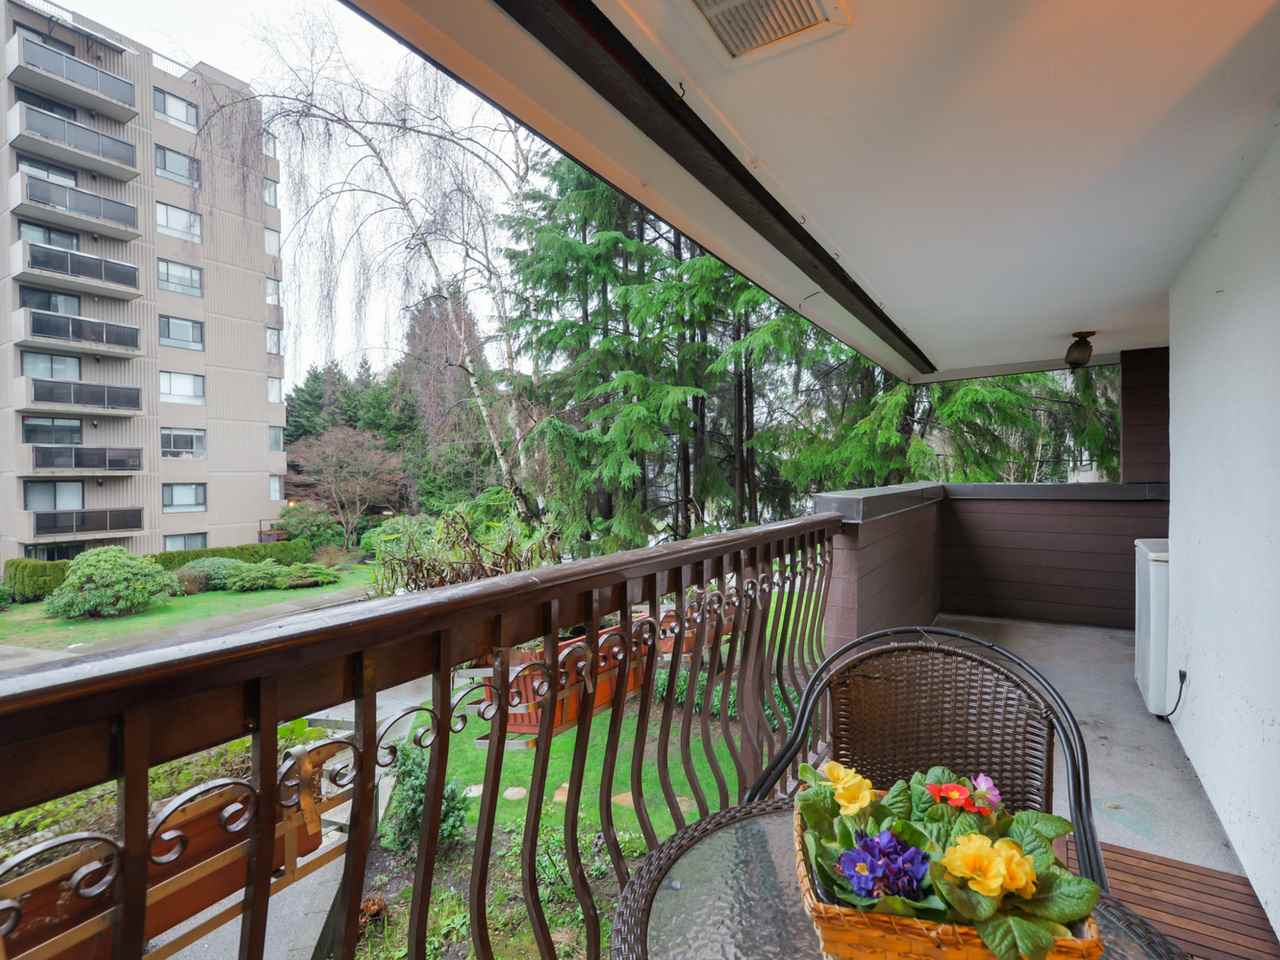 "Photo 14: 202 1352 W 10TH Avenue in Vancouver: Fairview VW Condo for sale in ""Tell Manor"" (Vancouver West)  : MLS® # R2035626"